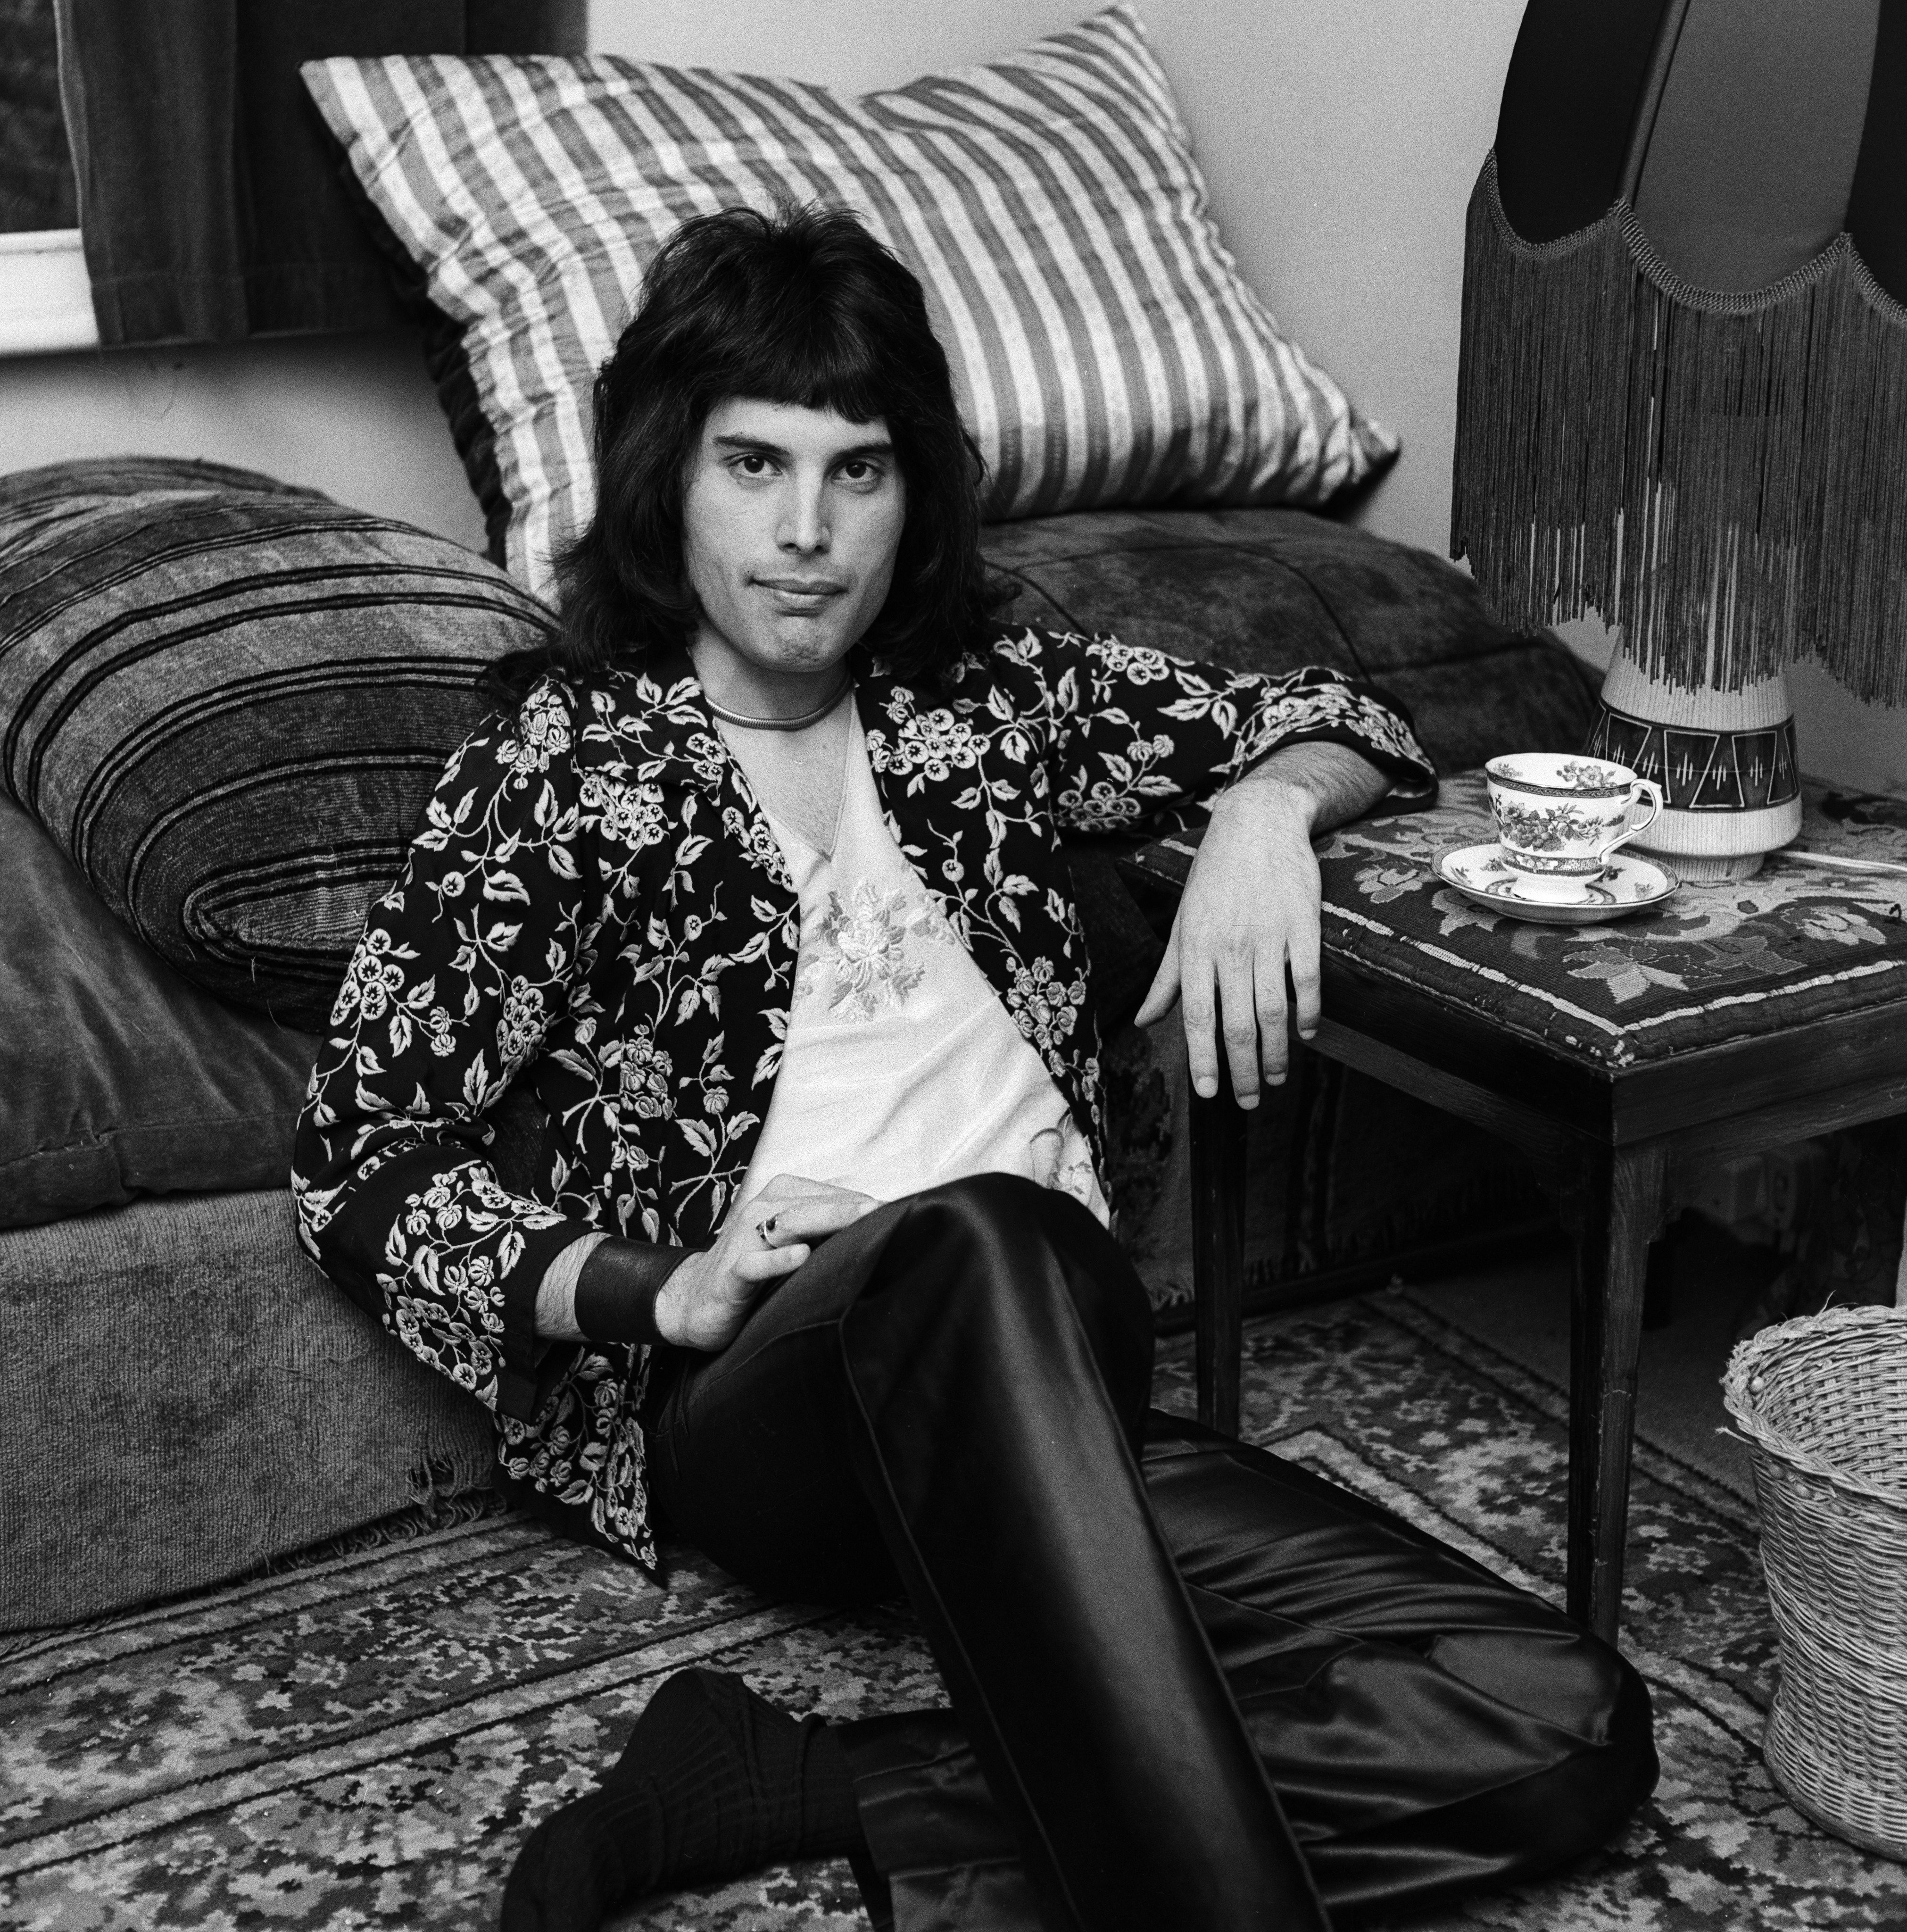 British singer and songwriter Freddie Mercury, lead vocalist of the rock band Queen. August, 1973. | Source: Getty Images